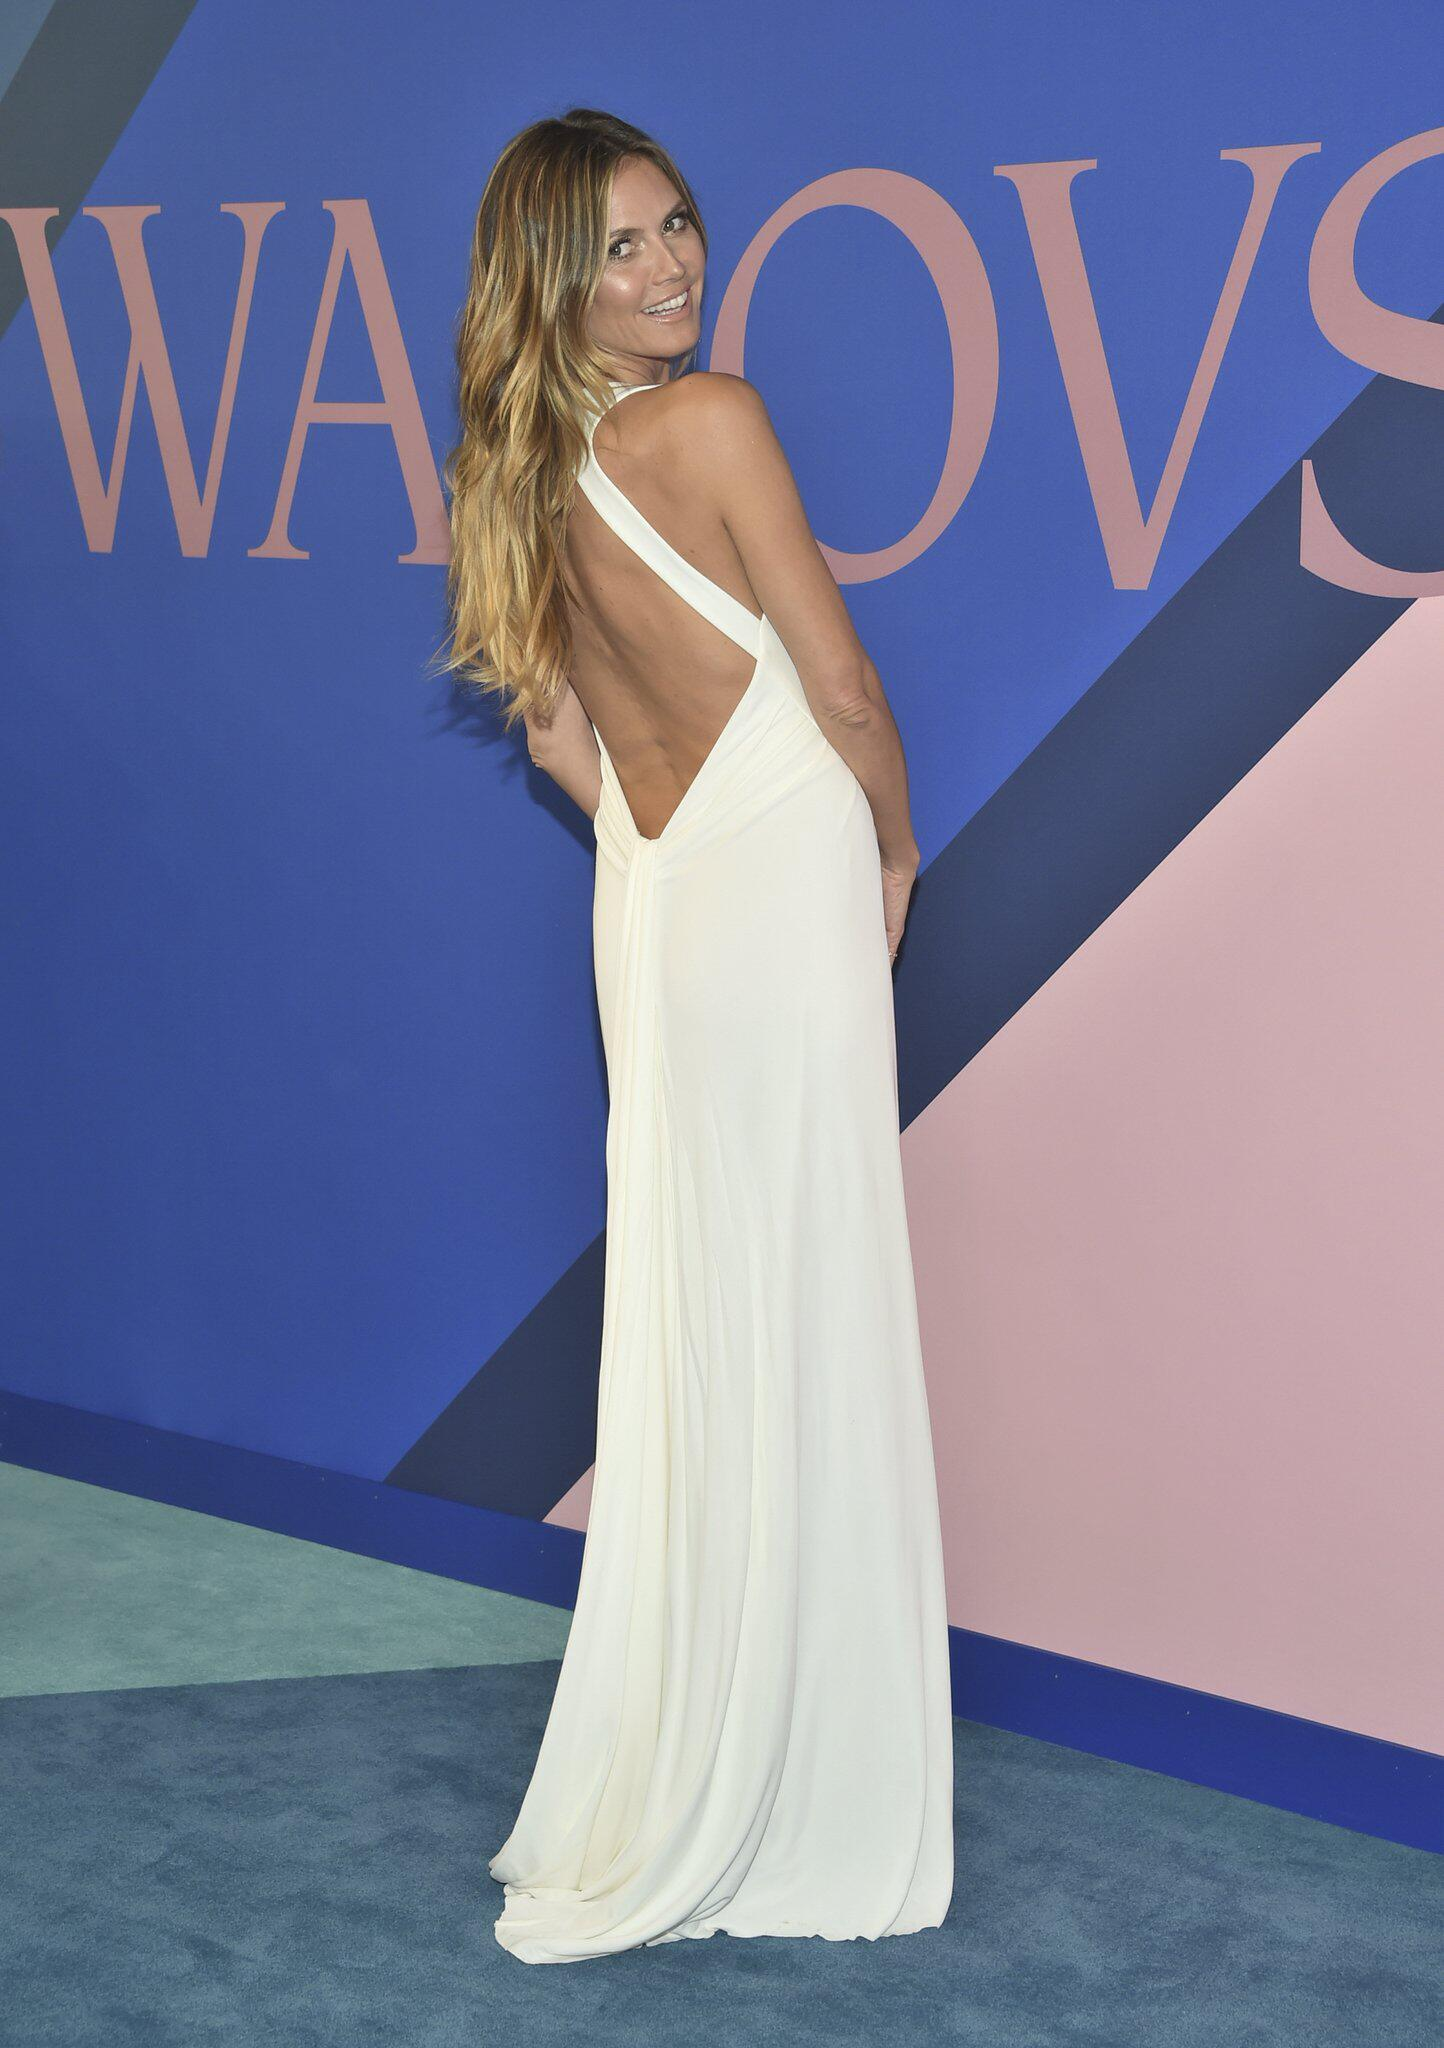 Bild zu CFDA Fashion Awards - Heidi Klum